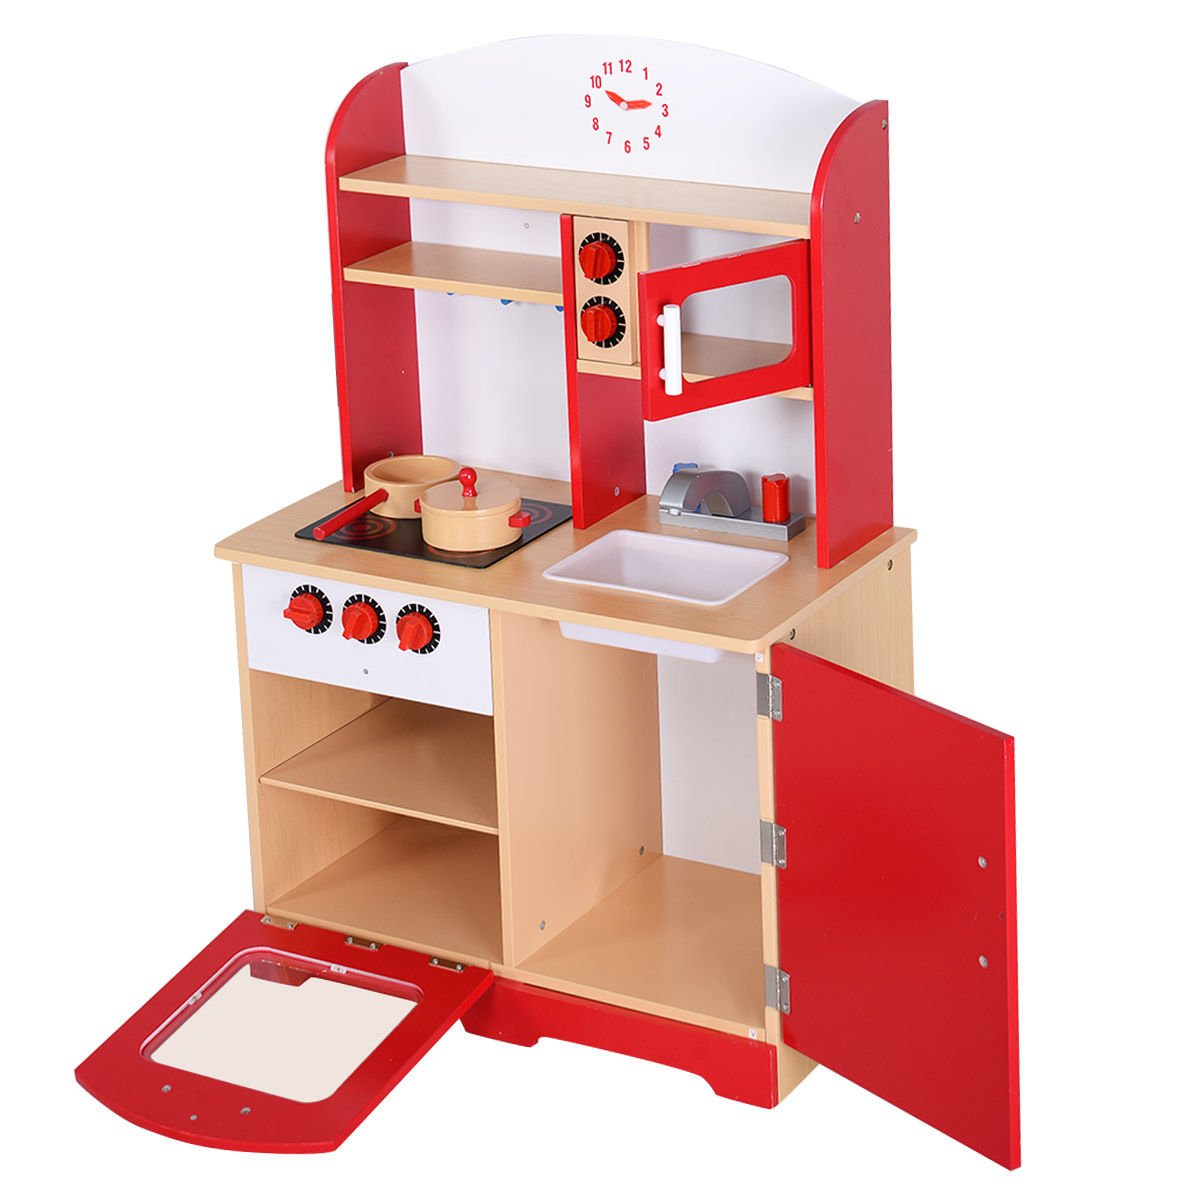 Great Amazon.com: Giantex Wood Kitchen Play Set For Kids Cooking Pretend Toddler  Playset, Red: Toys U0026 Games